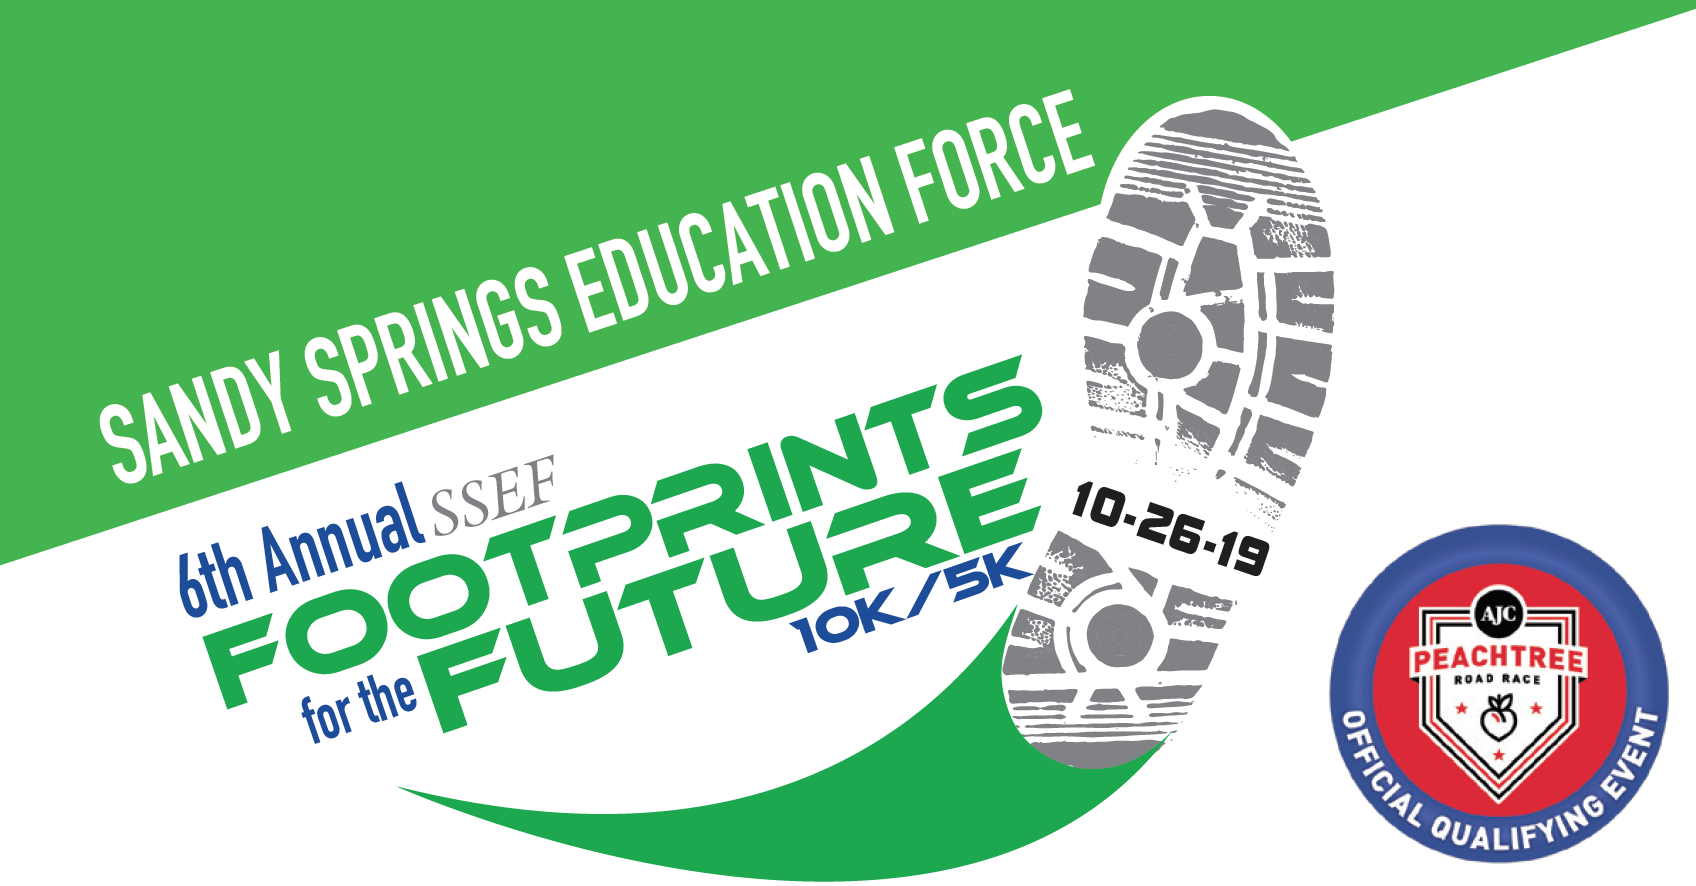 6th Annual Footprints for the Future Road Race